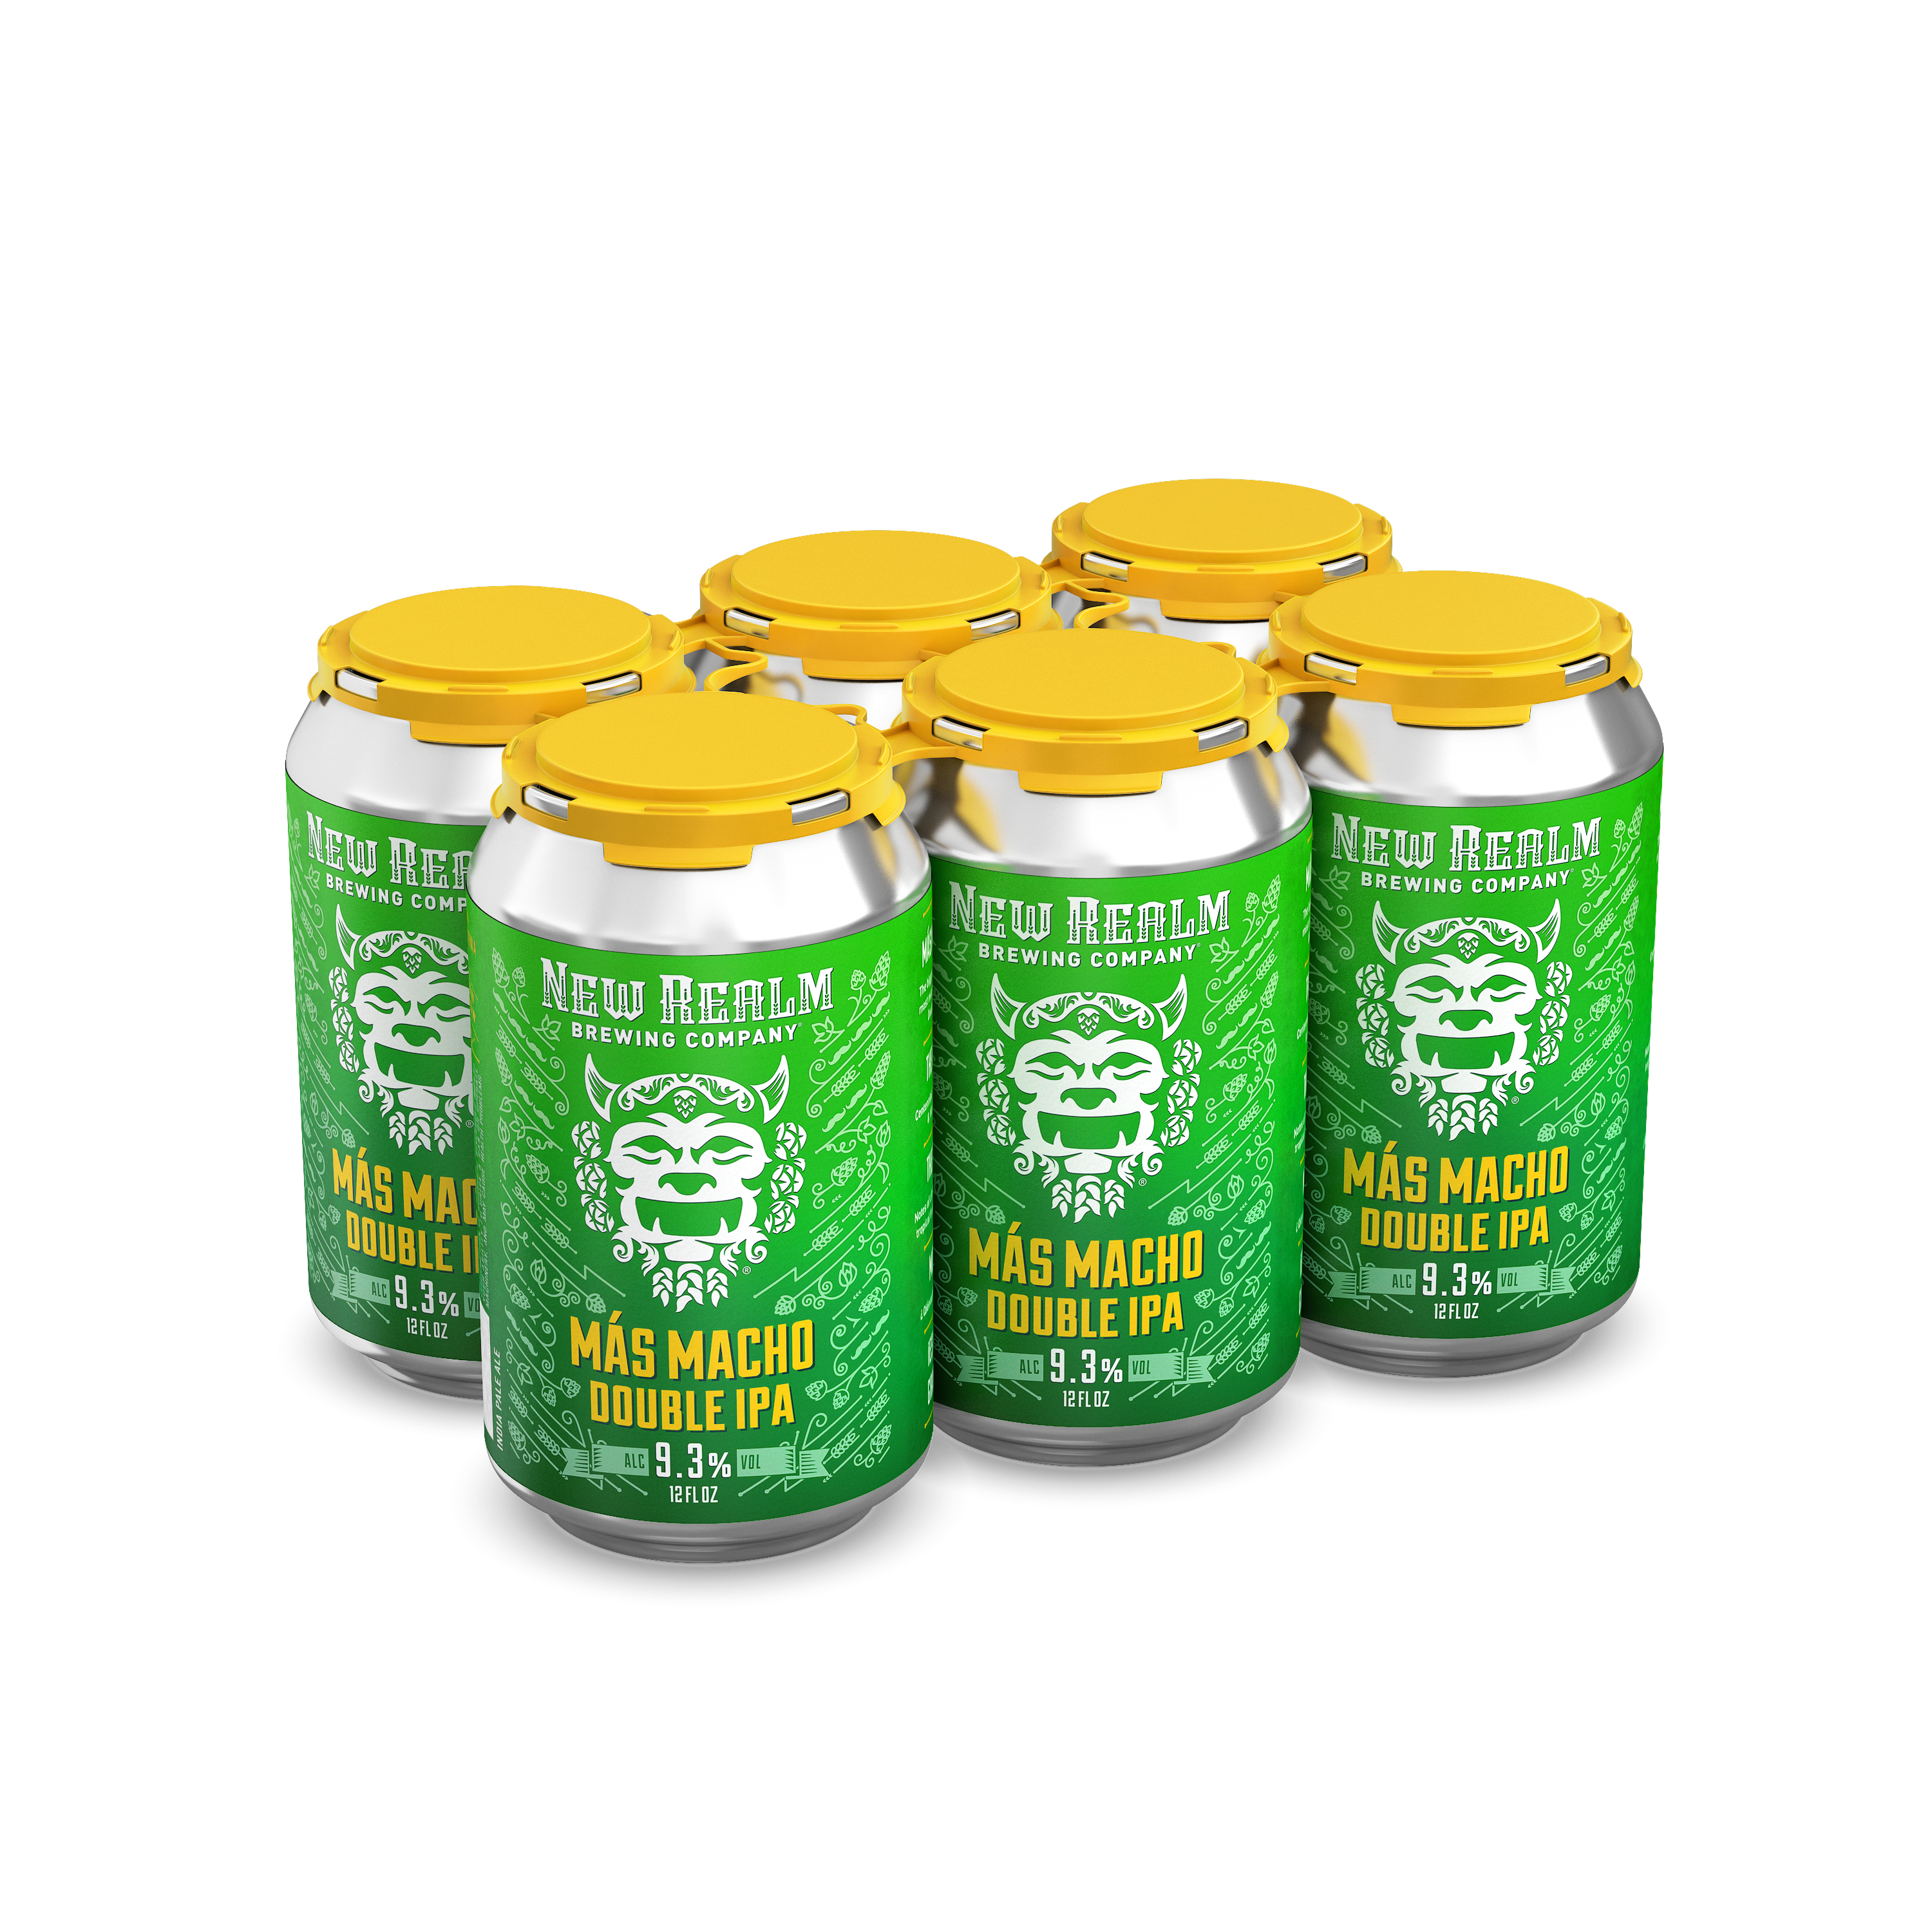 OUTSHINERY NewRealm 6pack Can MasMachoDoubleIPA